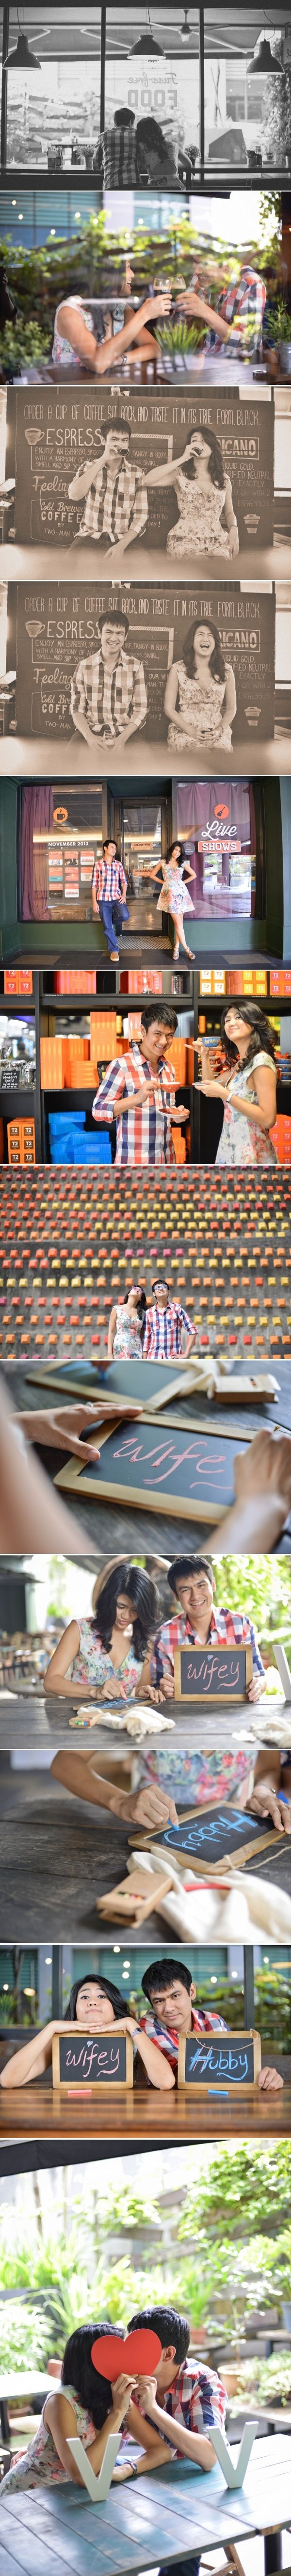 Cute lifestyle engagement shot at the coffee shop // PreWedding photos // Andrew Yep Photographie http://www.onethreeonefour.com/listing/AndrewYepPhotographie